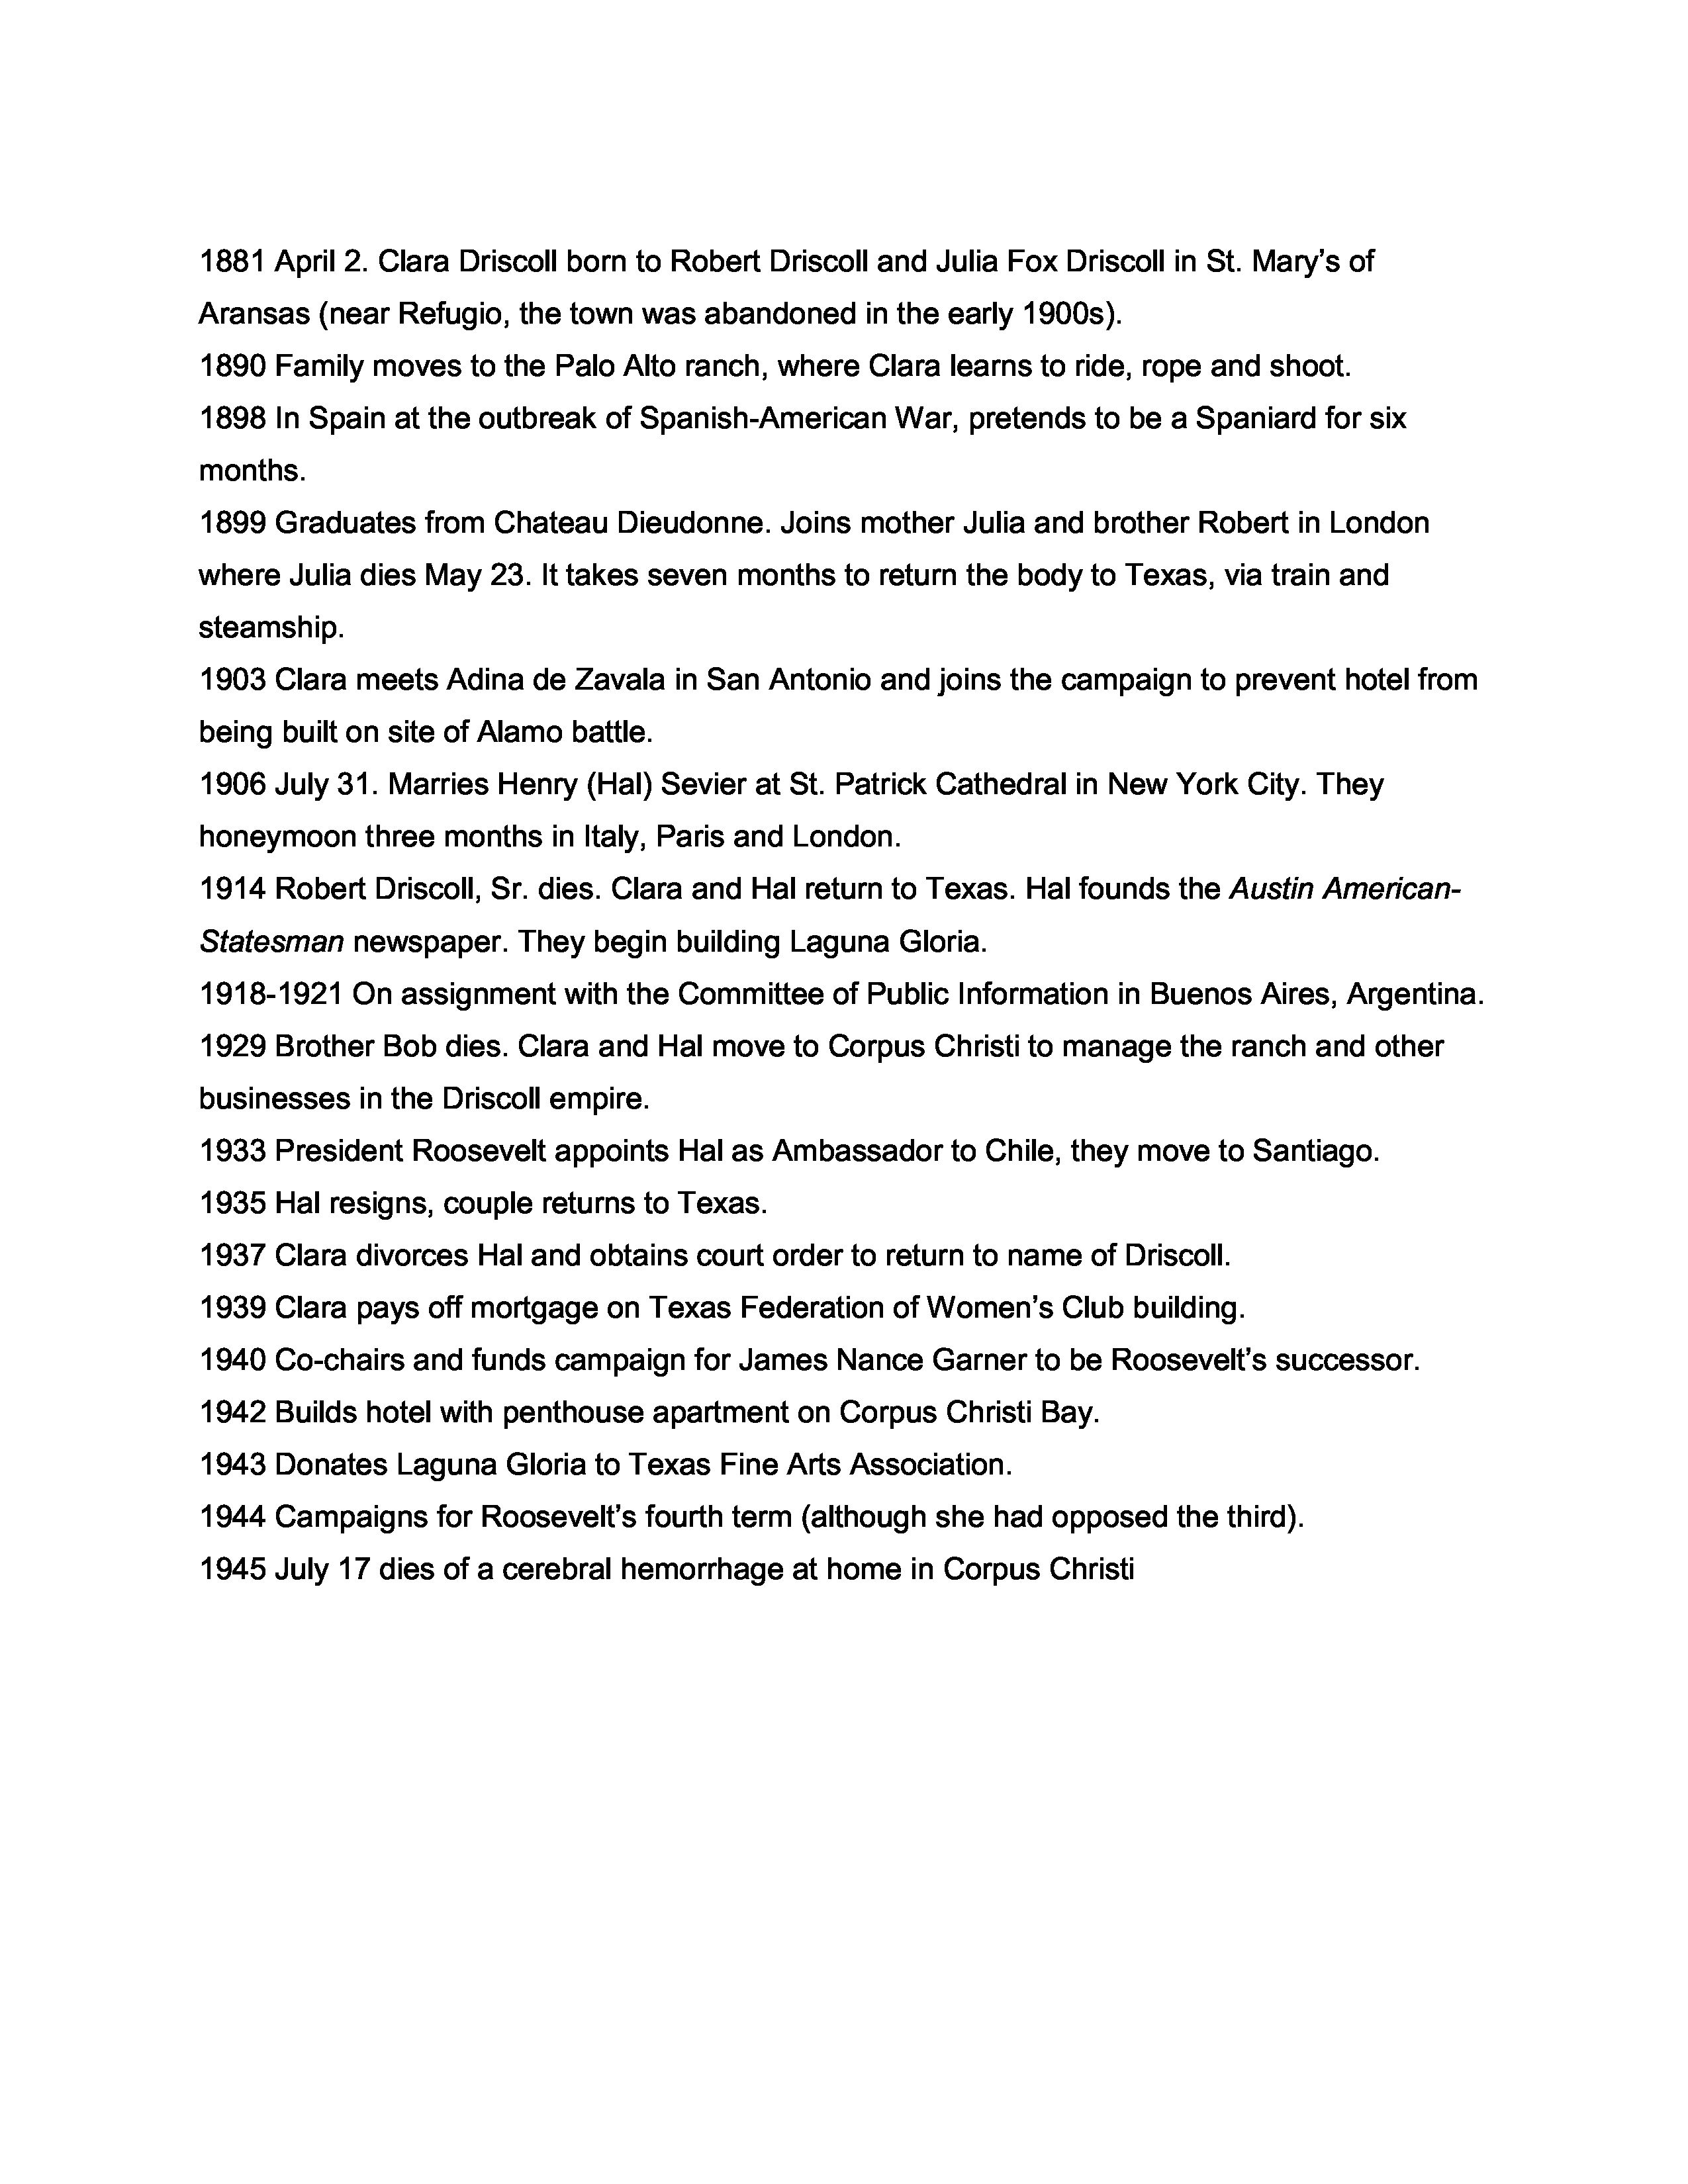 013 Driscoll Timeline Essay Example Amazing Biographical Sample Autobiographical For High School Bibliography Examples Full